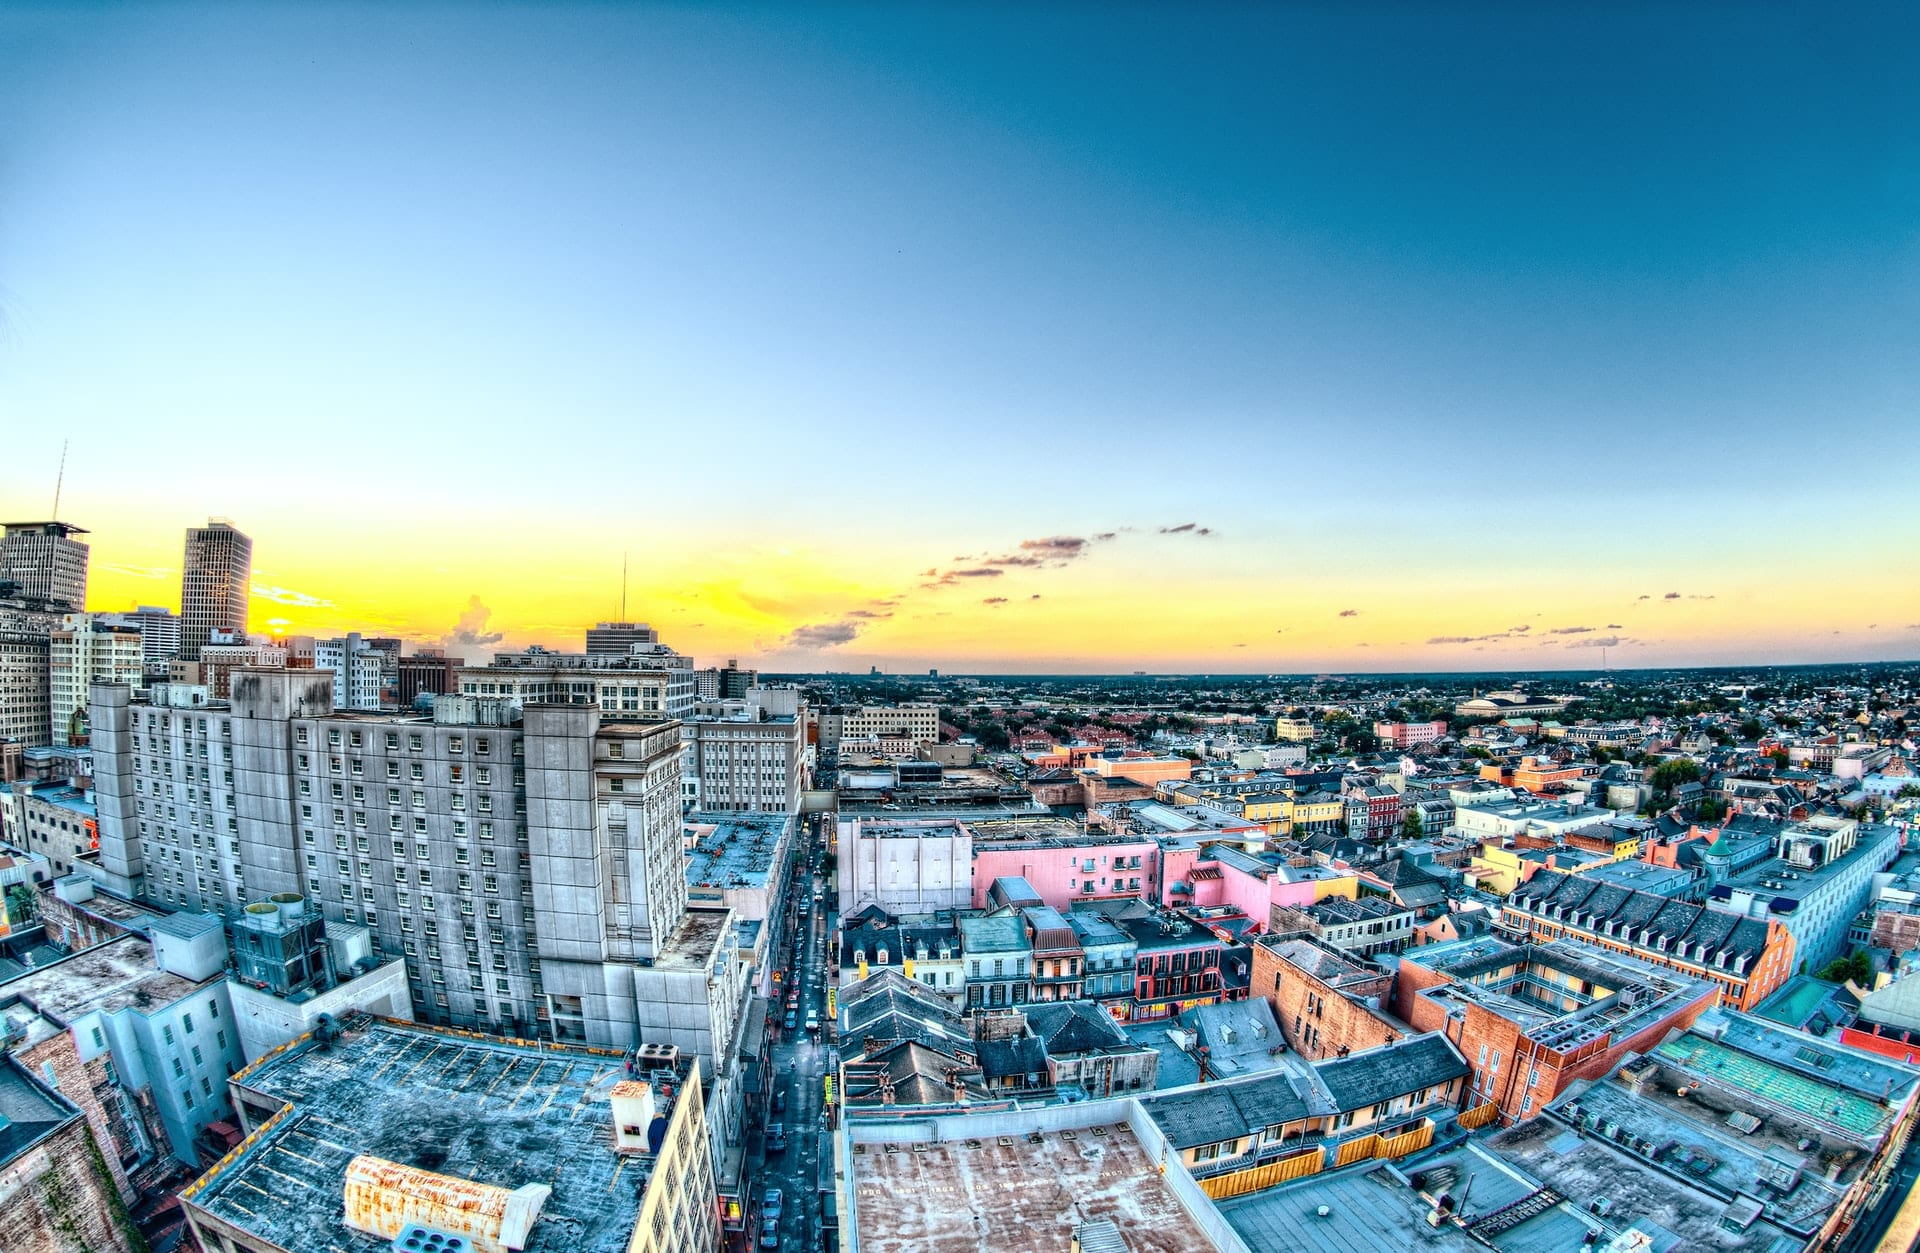 Hotel Monteleone at Sunset in New Orleans